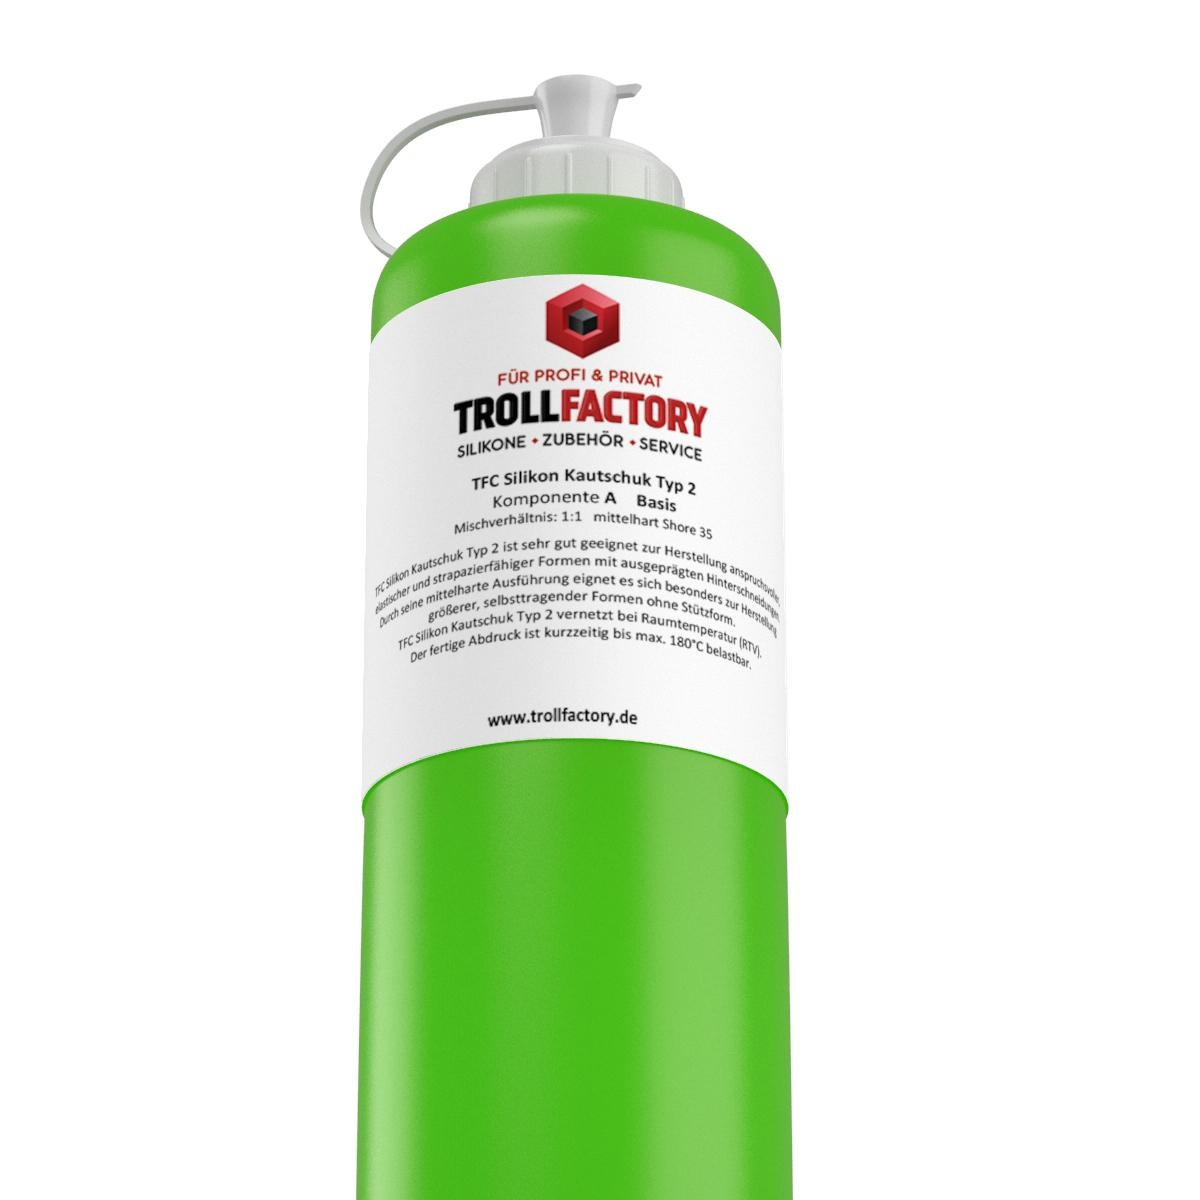 Troll Factory TFC Troll Factory Silicone Rubber type 2 Afvorm silicone 1000g